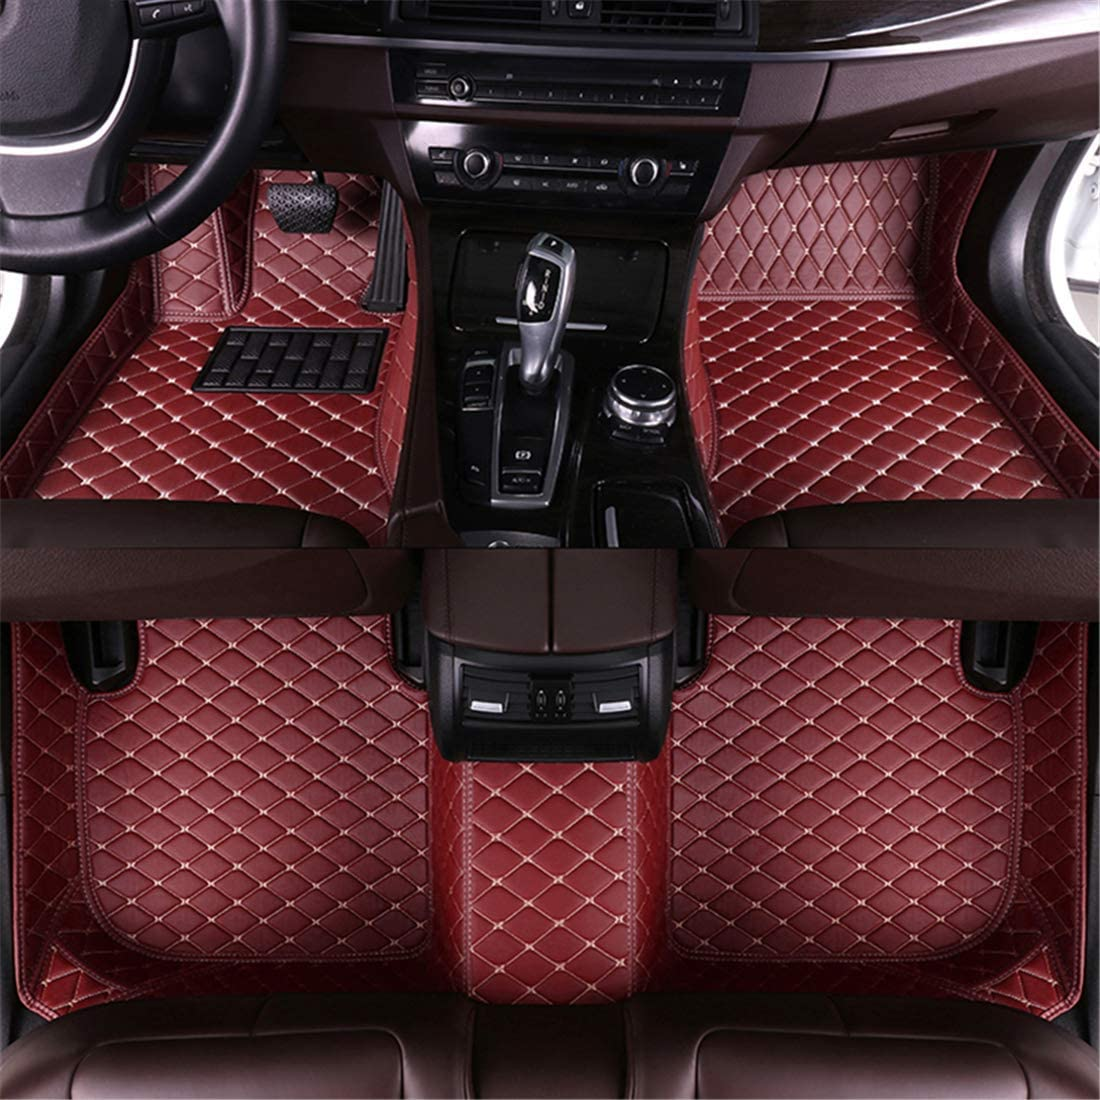 Muchkey car Floor Mats fit for KIA Soul 2013-2019 Full Coverage All Weather Protection Non-Slip Leather Floor Liners Black-Red